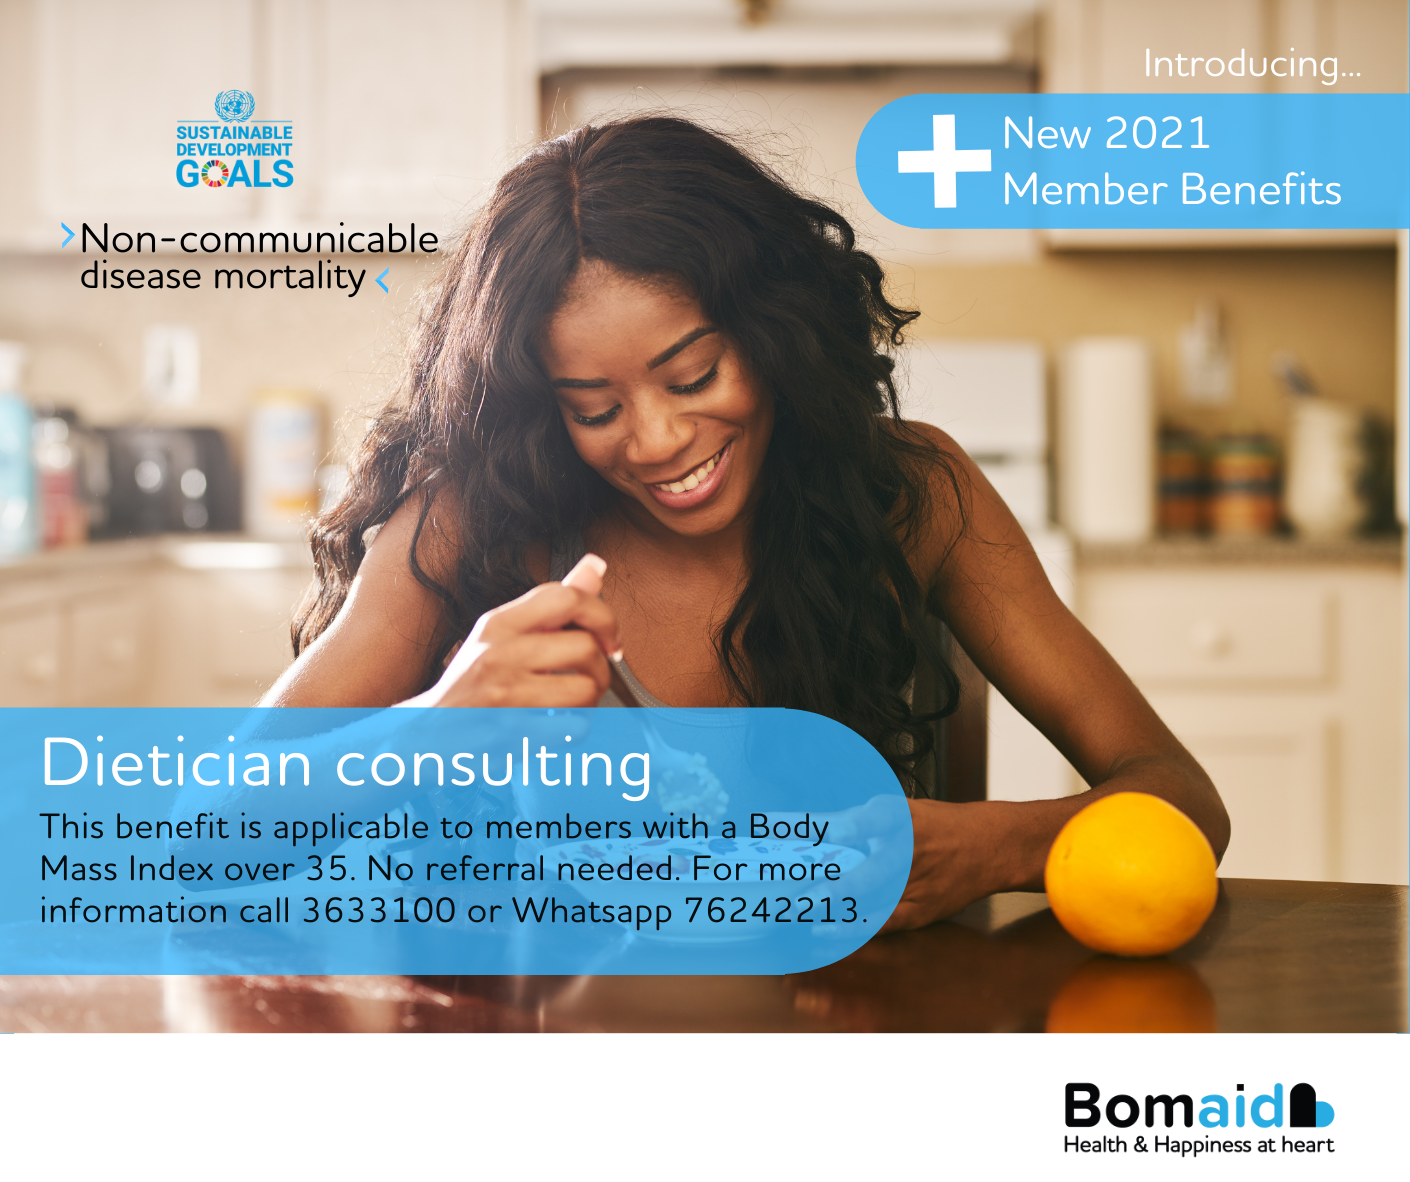 New Benefits_Dietician Consulting